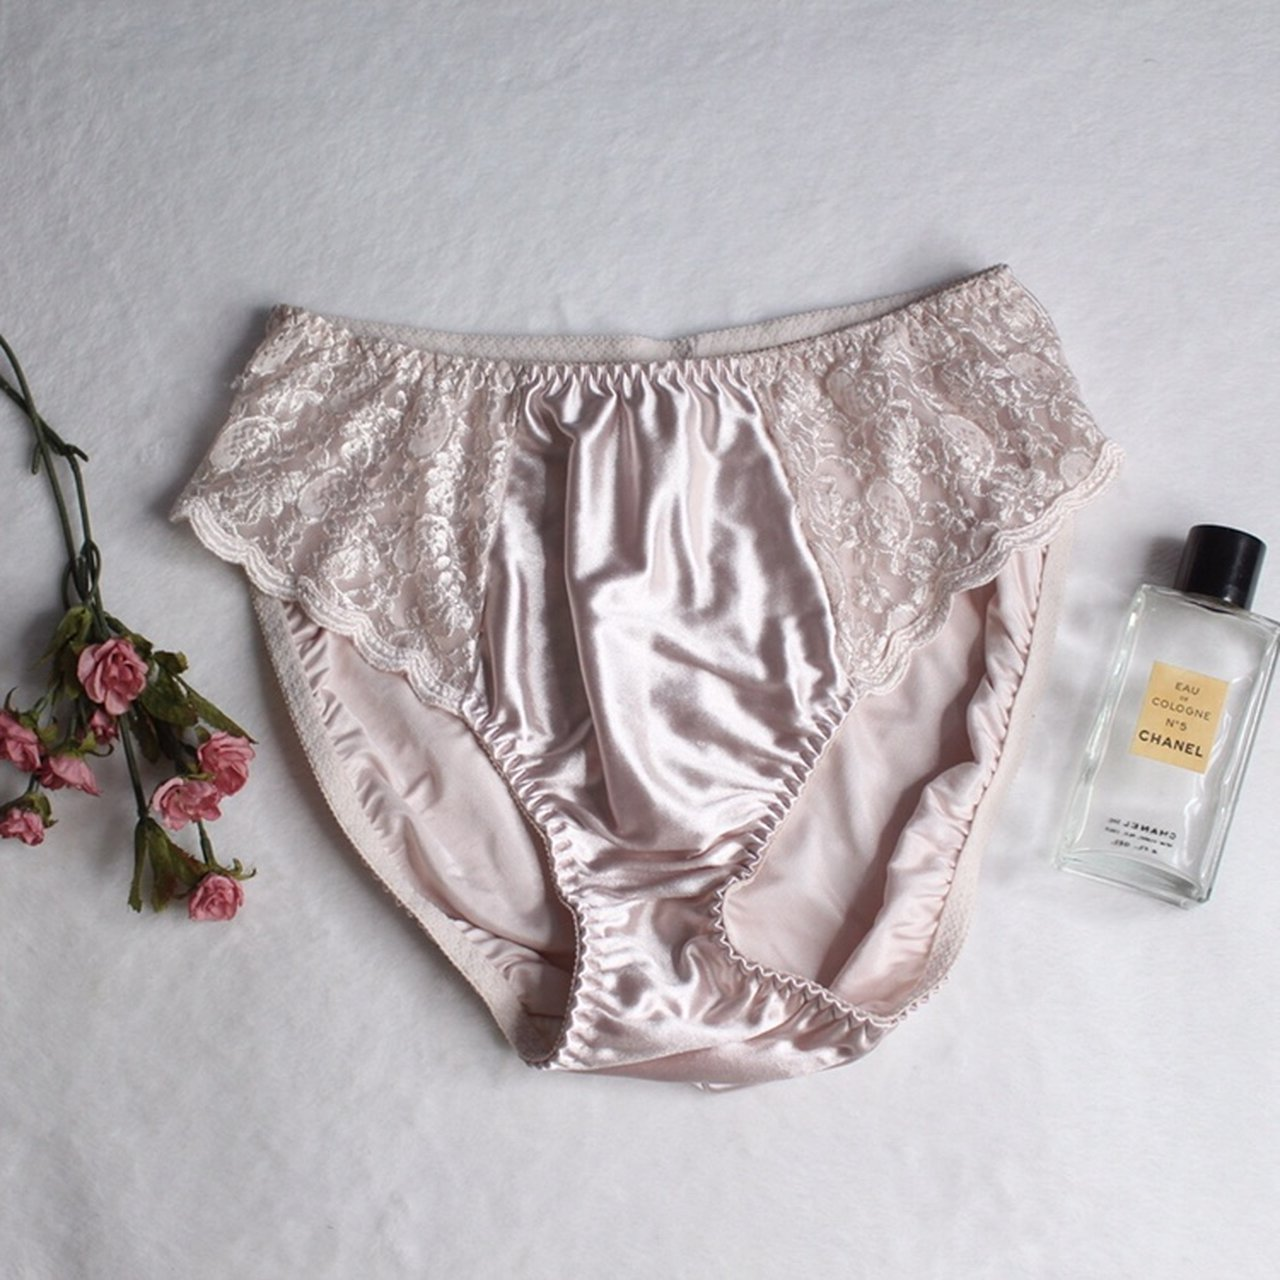 f95da4abc02fe Chanel Underwear 90s